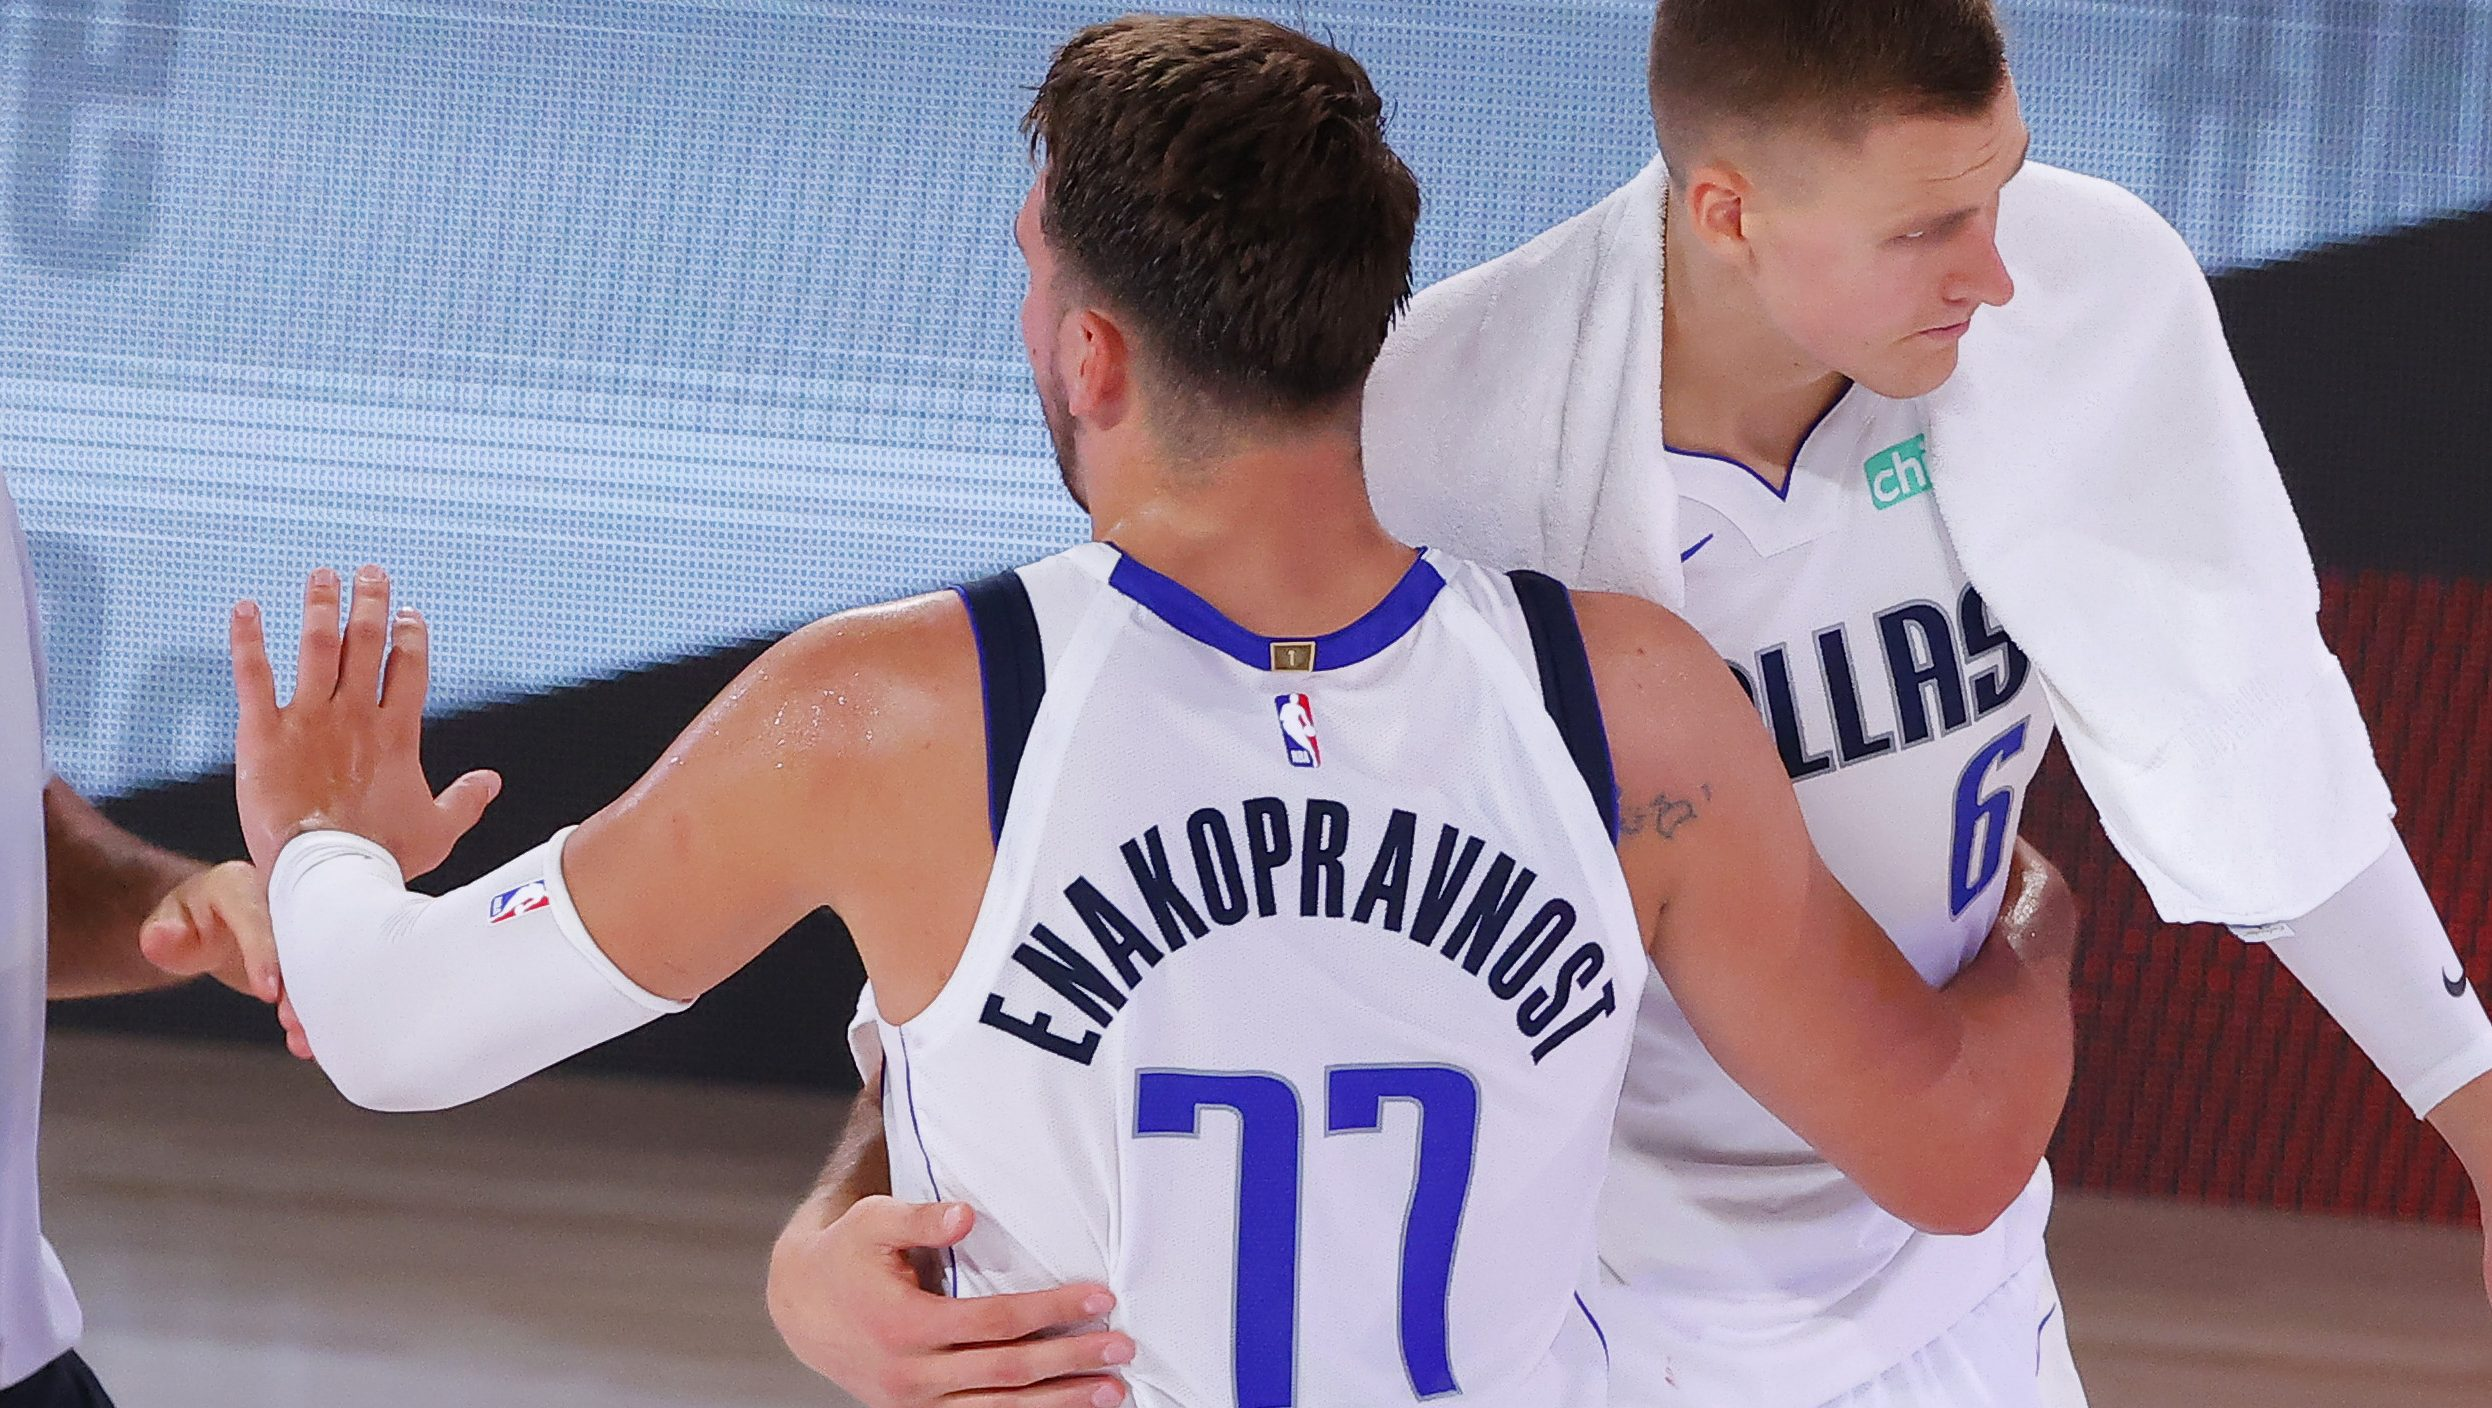 Luka Doncic S Jersey What Does Enakopravnost Mean Heavy Com